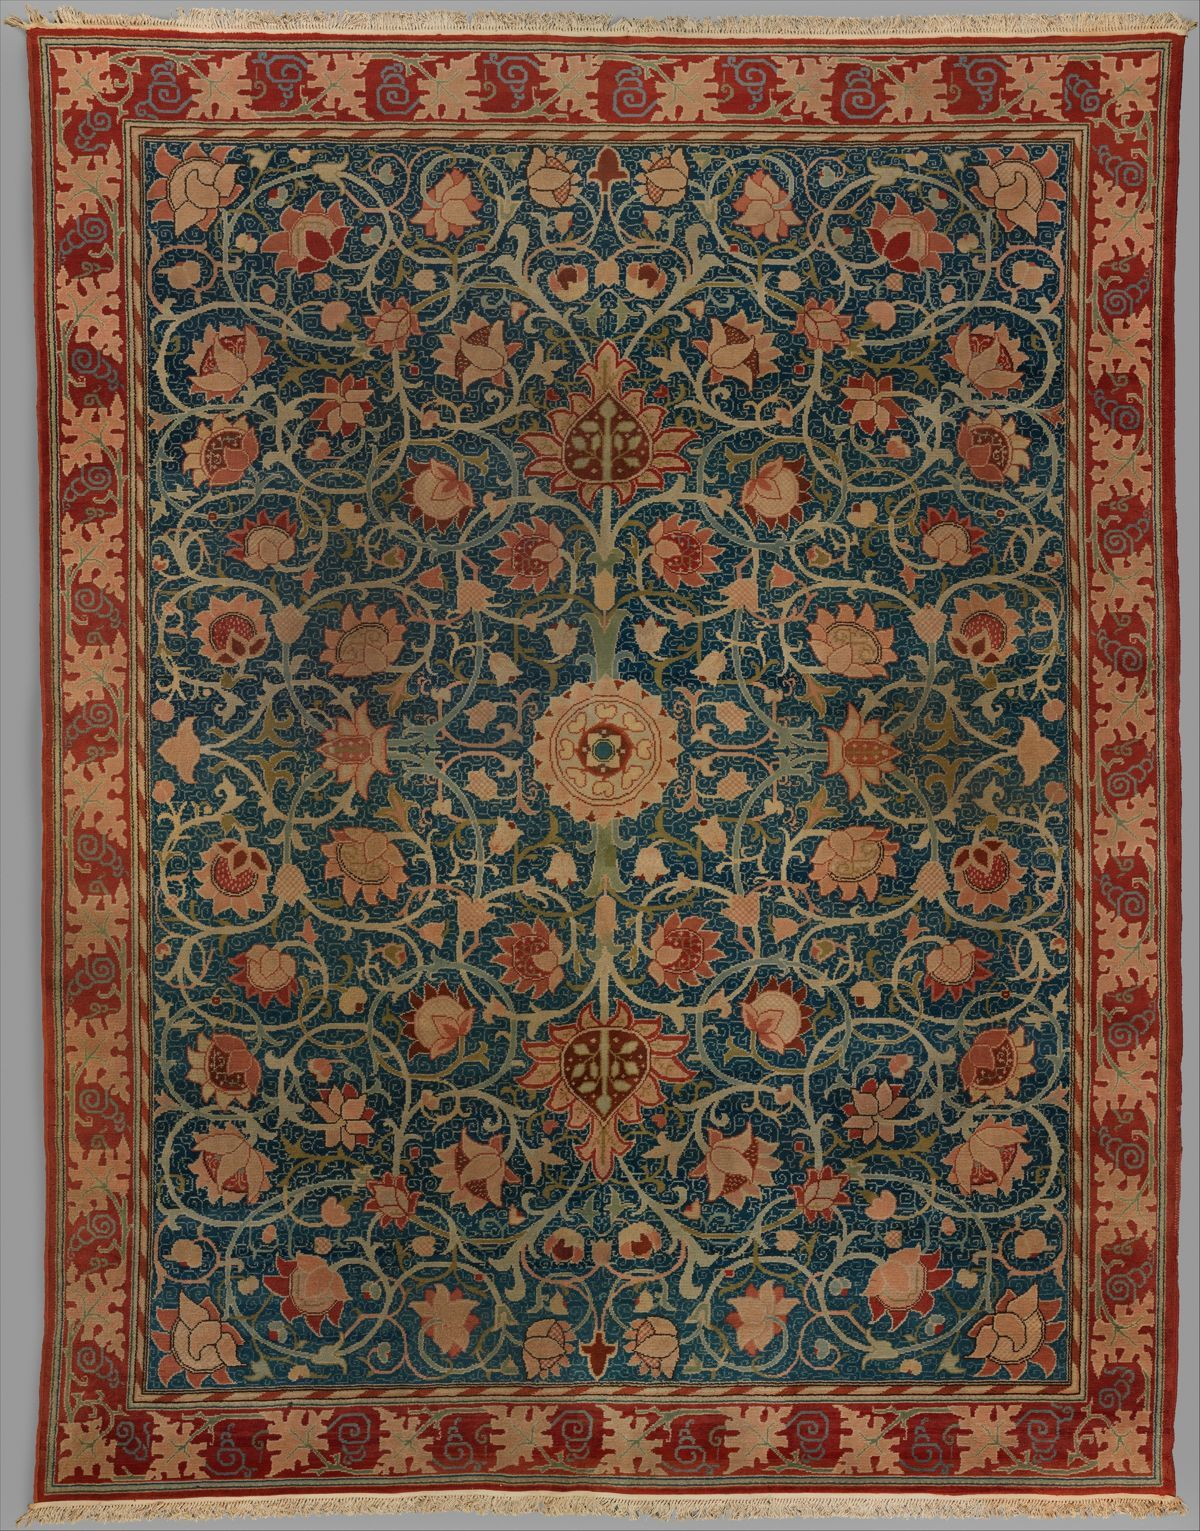 Holland Park Carpet Designer Designed By William Morris British Walthamstow London 1834 1896 H William Morris William Morris Designs William Morris Patterns